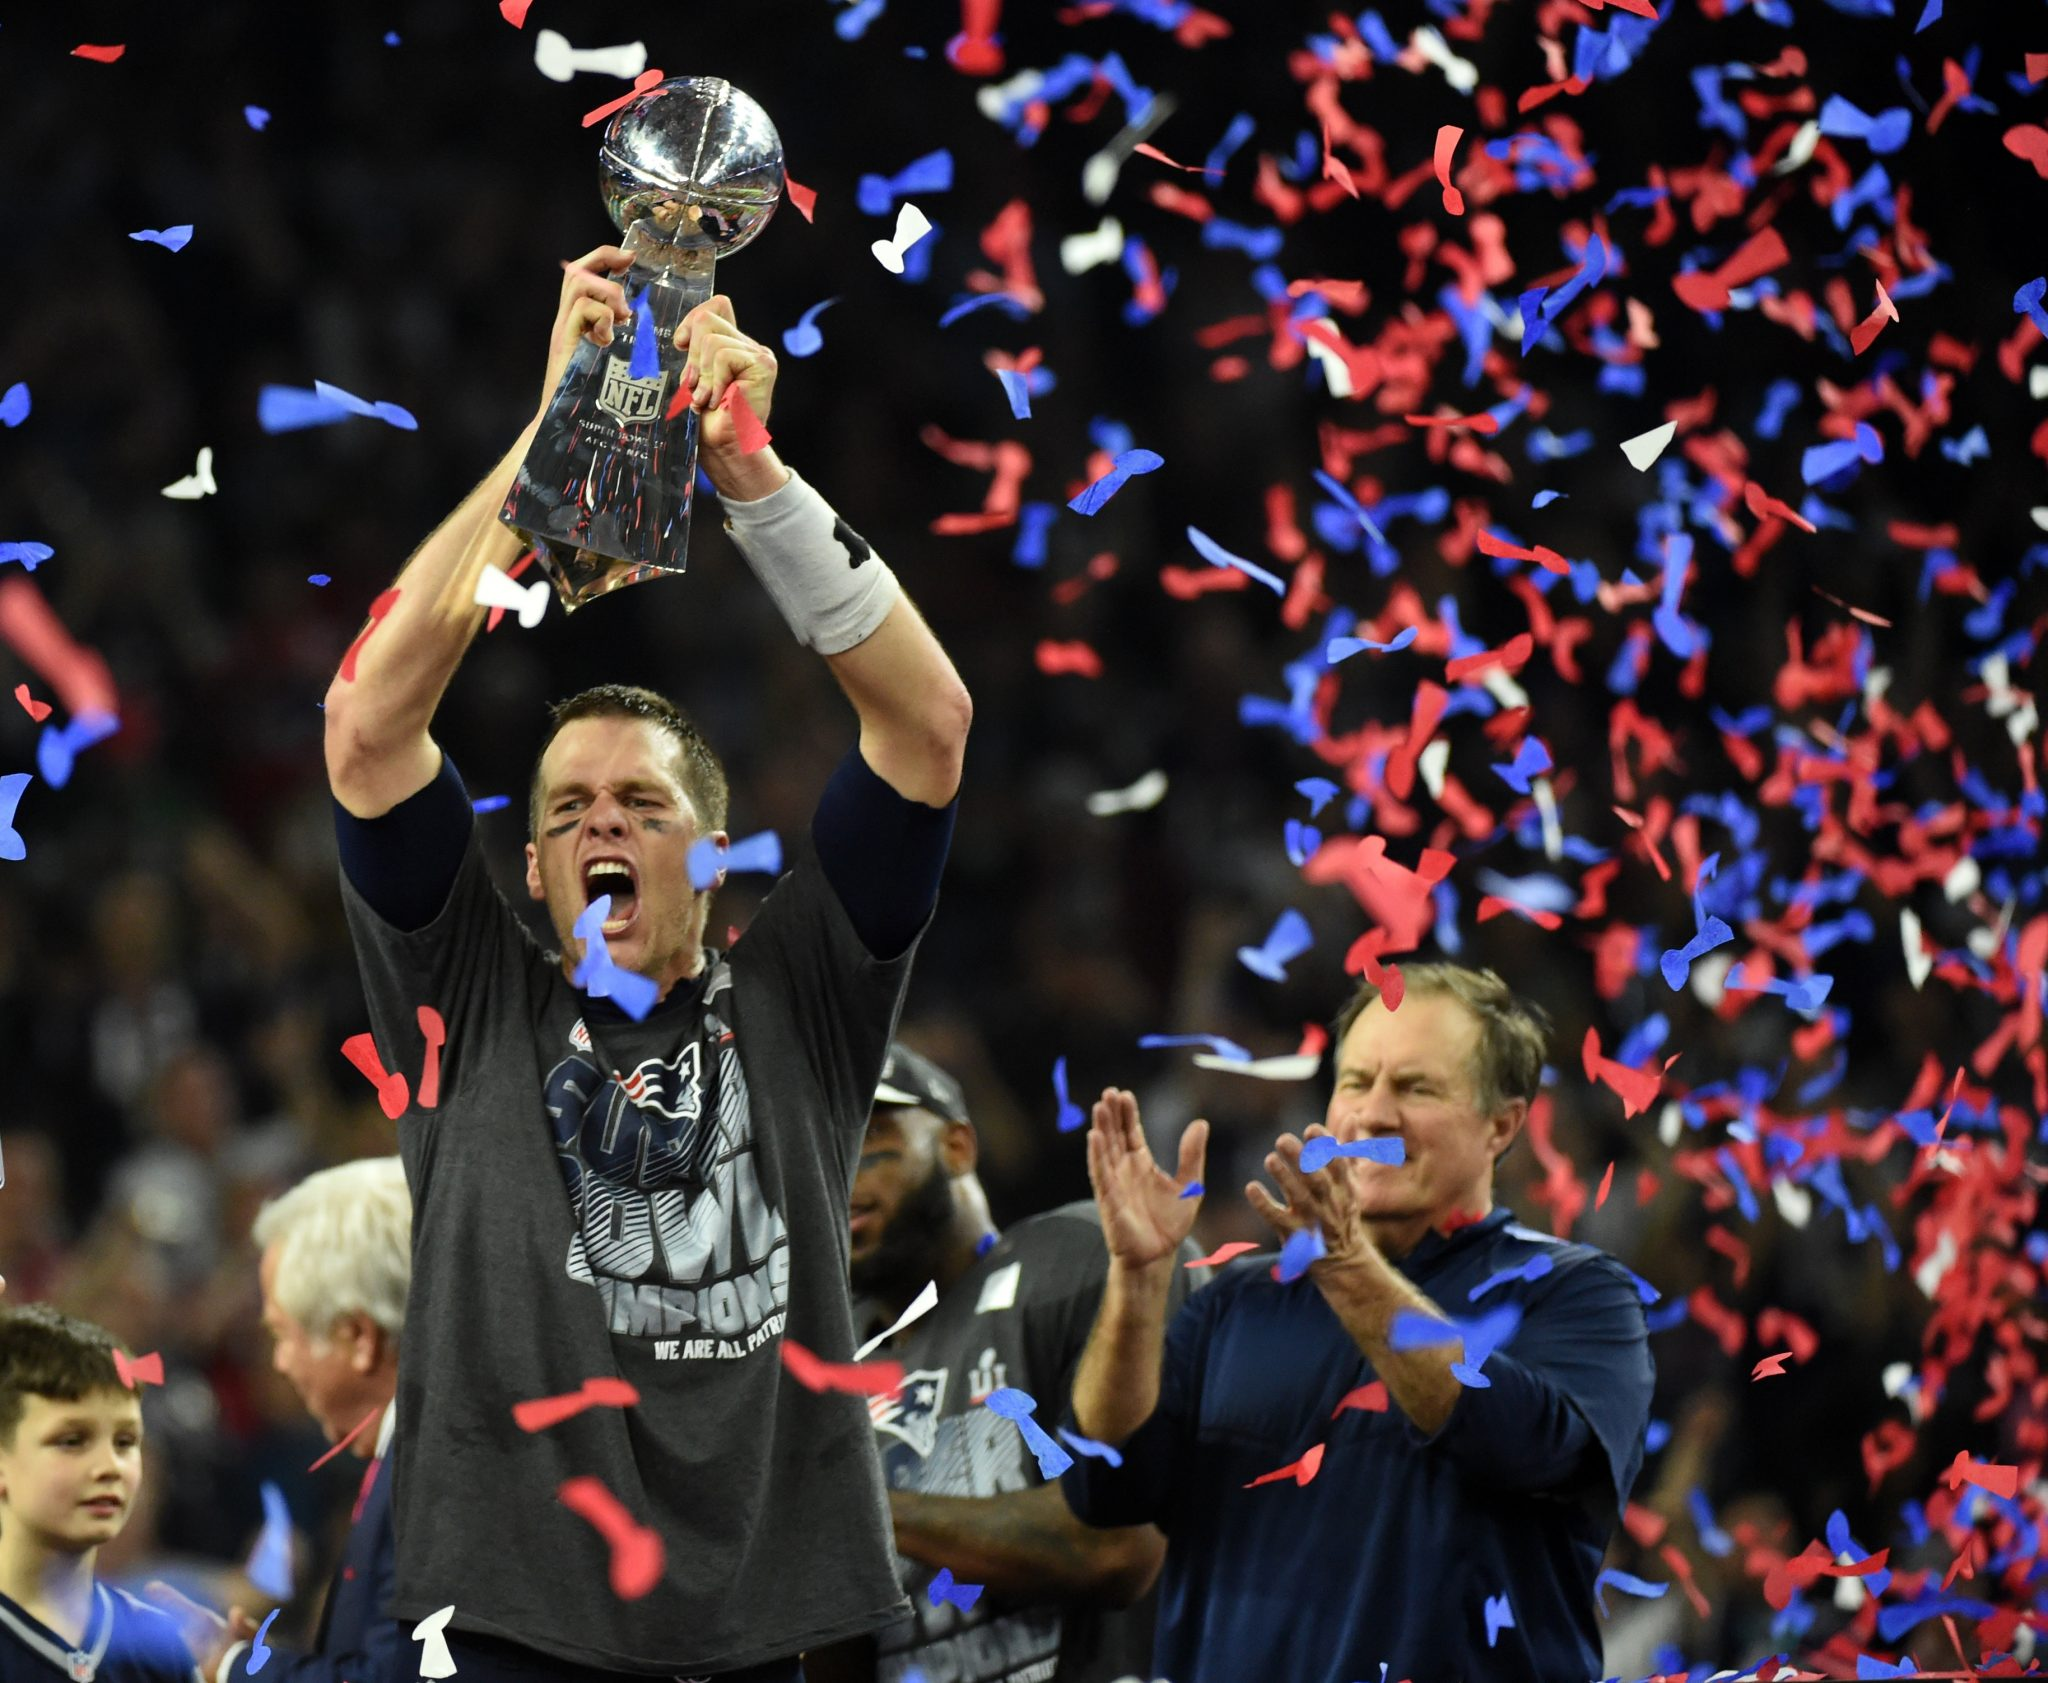 Tom Brady #12 of the New England Patriots holds the Vince Lombardi Trophy as Head coach Bill Belichick (R) looks on  after defeating the Atlanta Falcons 34-28 in overtime during Super Bowl 51 at NRG Stadium on February 5, 2017 in Houston, Texas. The Patriots defeated the Falcons 34-28 after overtime.  / AFP PHOTO / Timothy A. CLARY